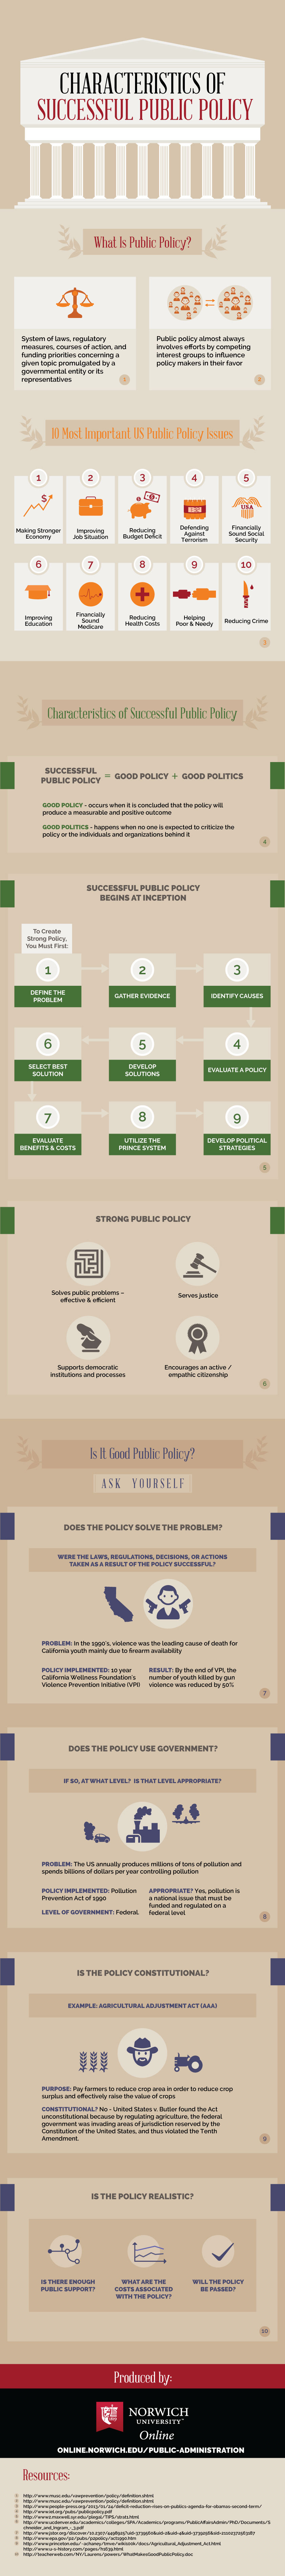 public policy infographic